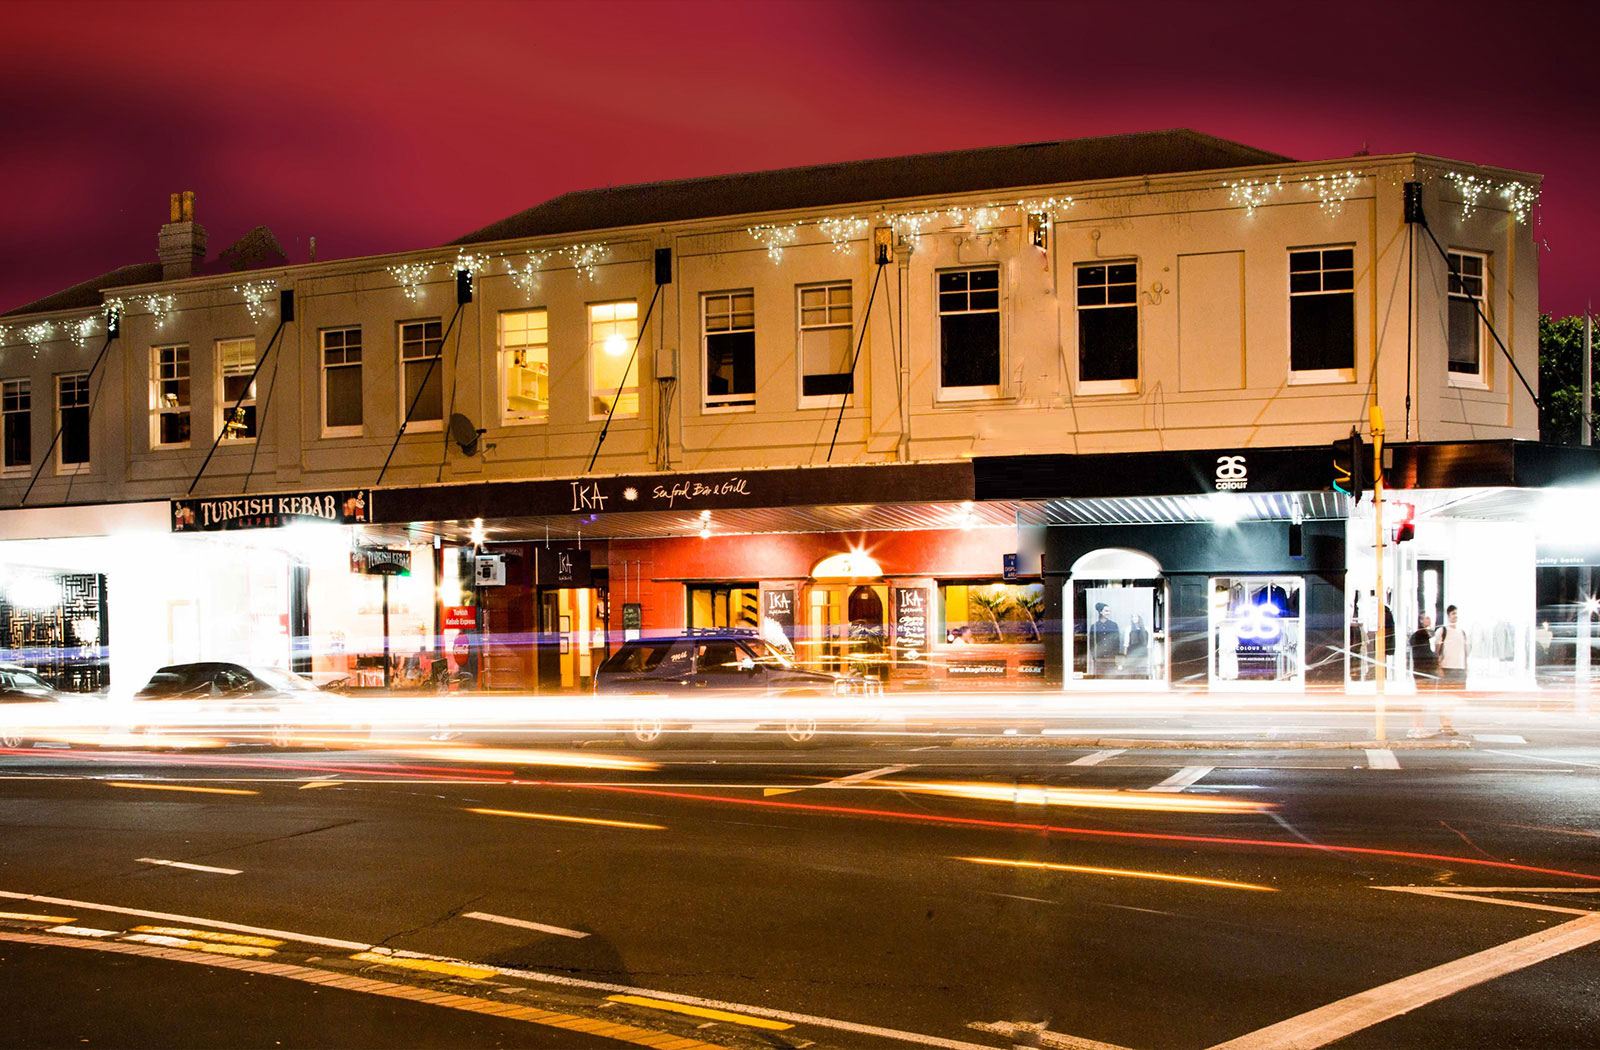 Lease Real Estate Auckland - Retail Property